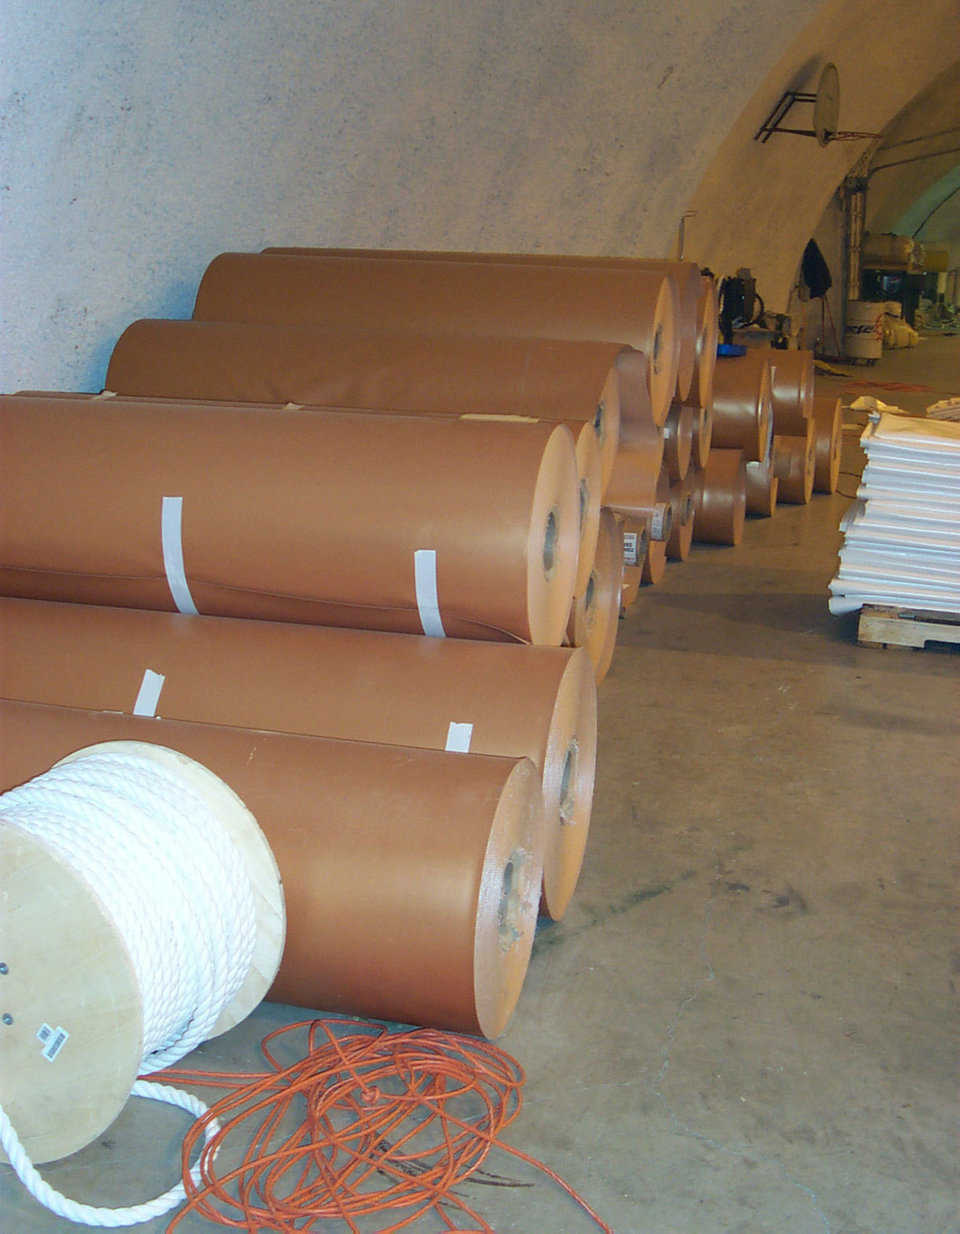 Airform fabrics — Monolithic has special fabrics shipped to Bruco from all over the world. Bruco safely stores massive rolls.